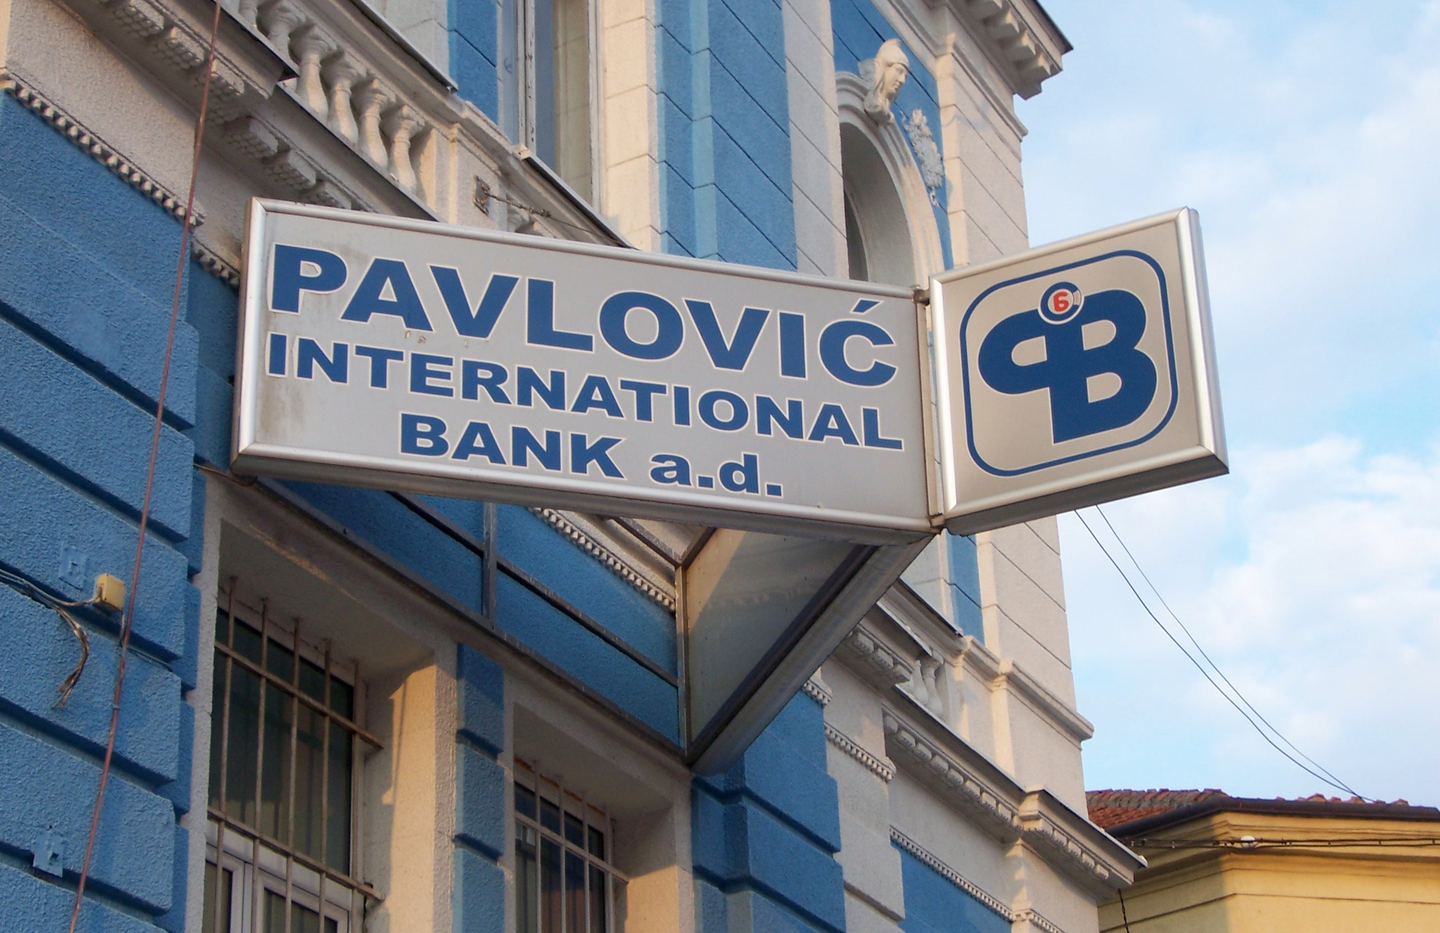 Pavlovic International Bank